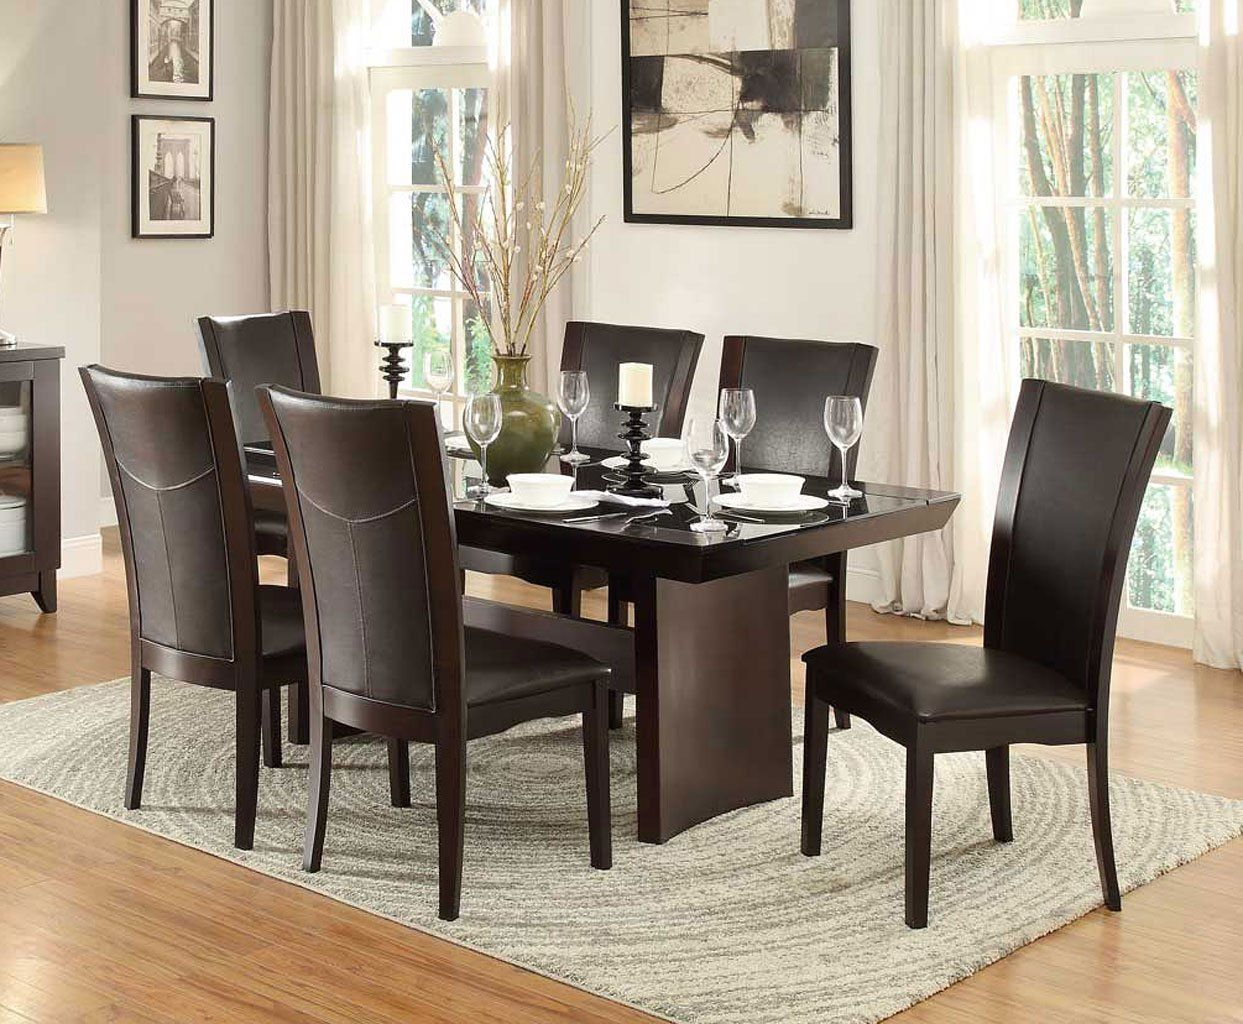 Daisy Glass Insert Dining Room Set W Dark Brown Chairs Brown